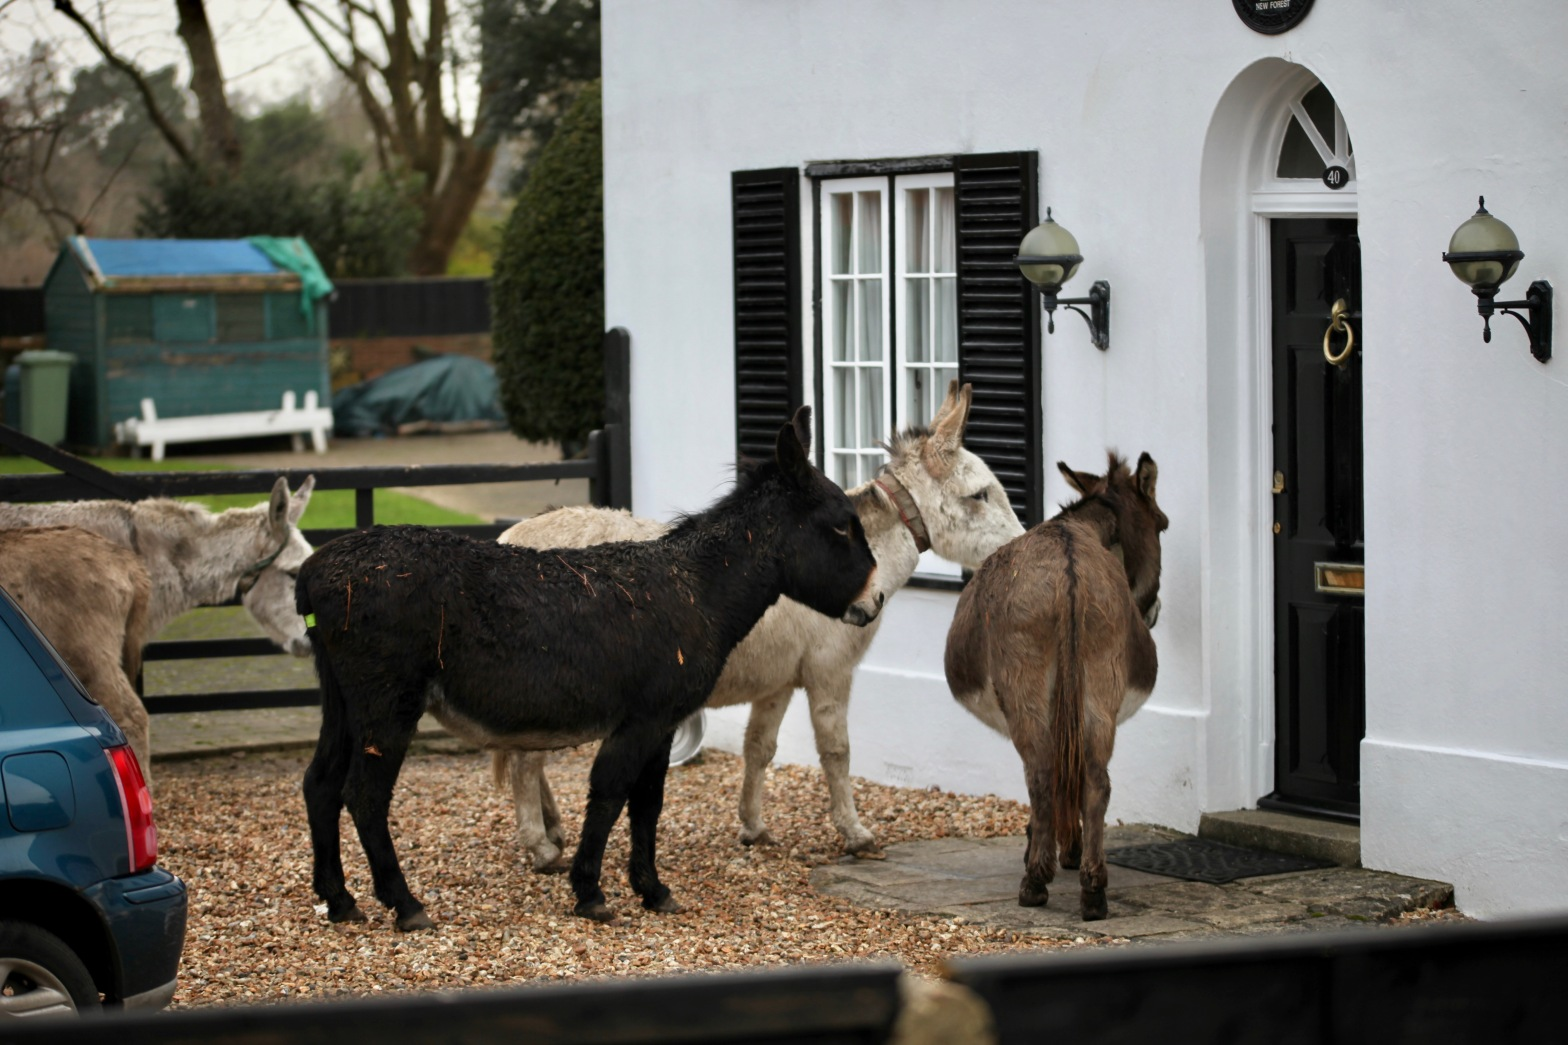 Donkeys queuing for food 1